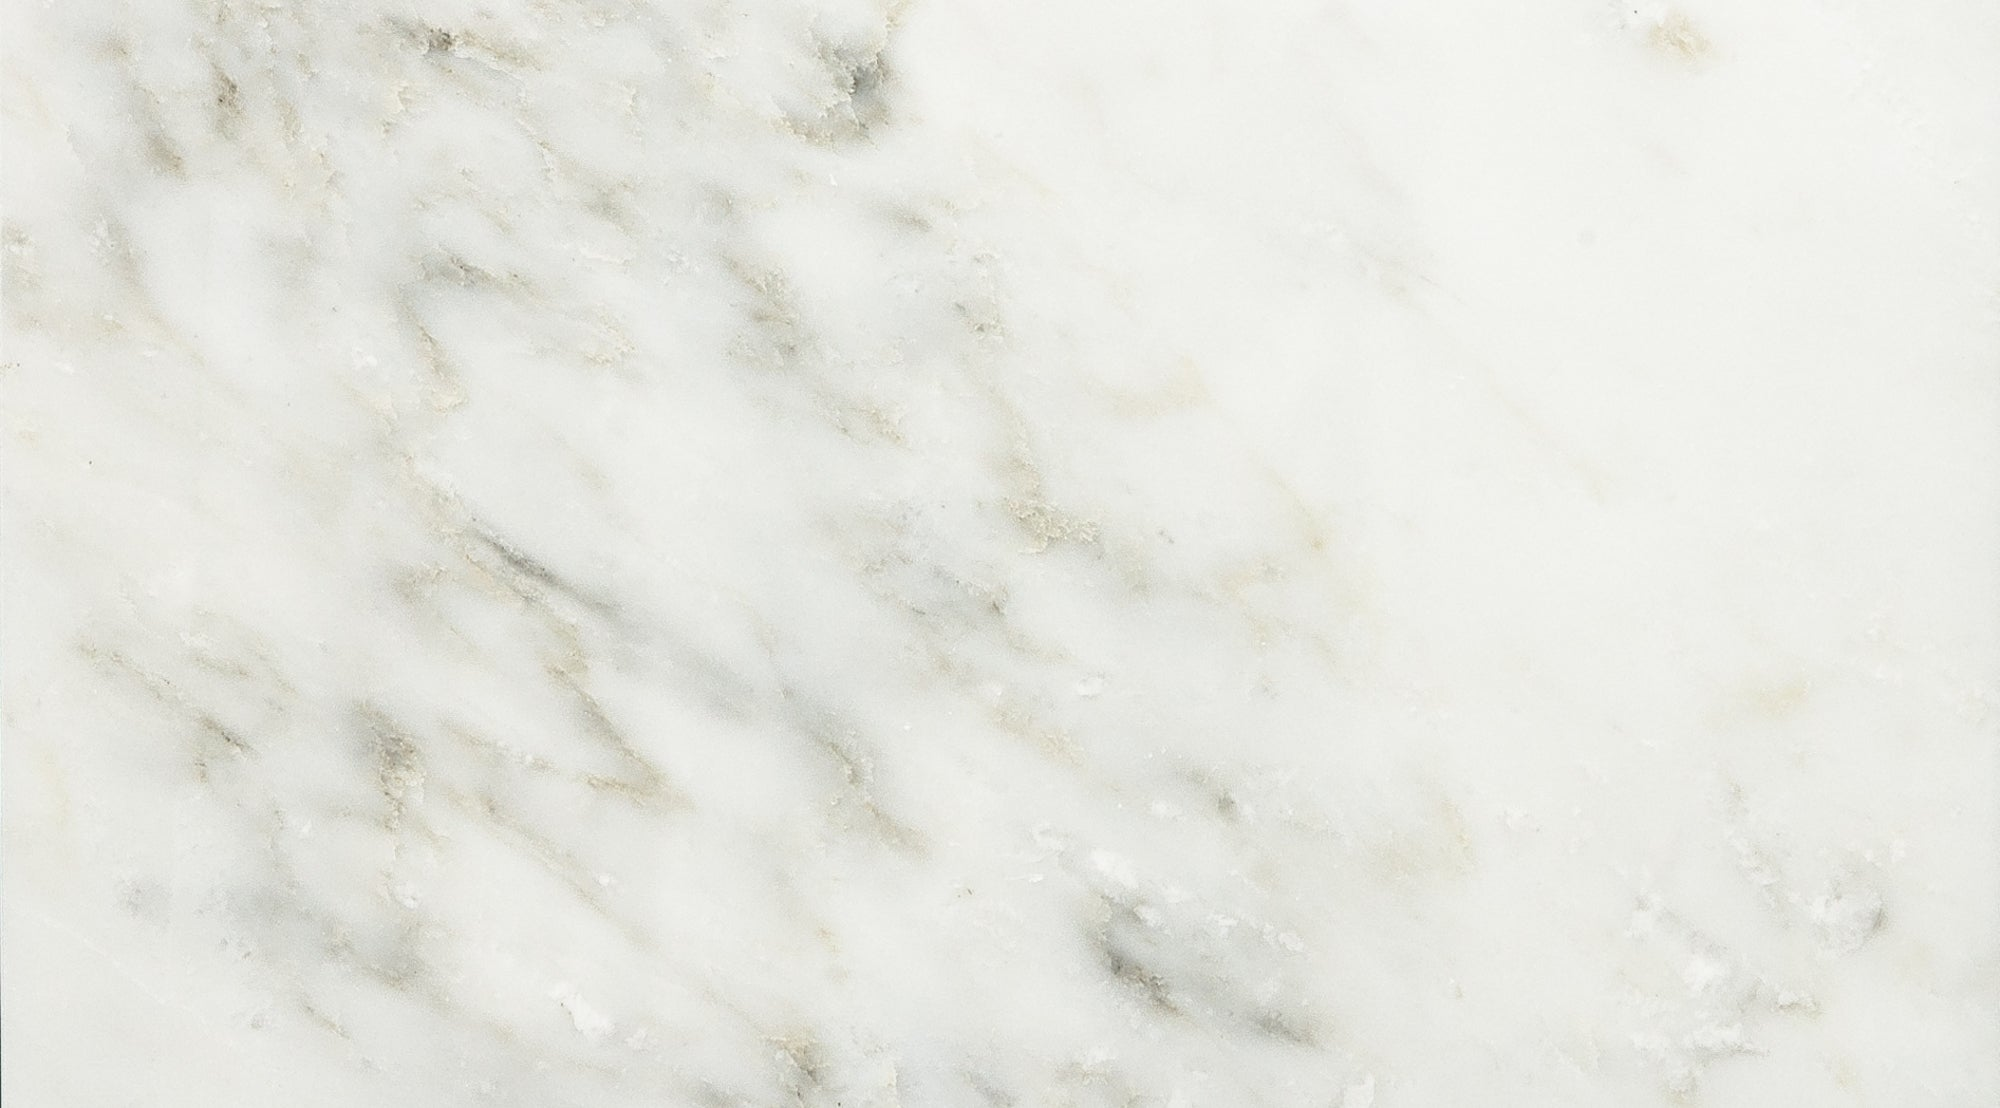 Pacific White A1 Select Marble Slab 3/4